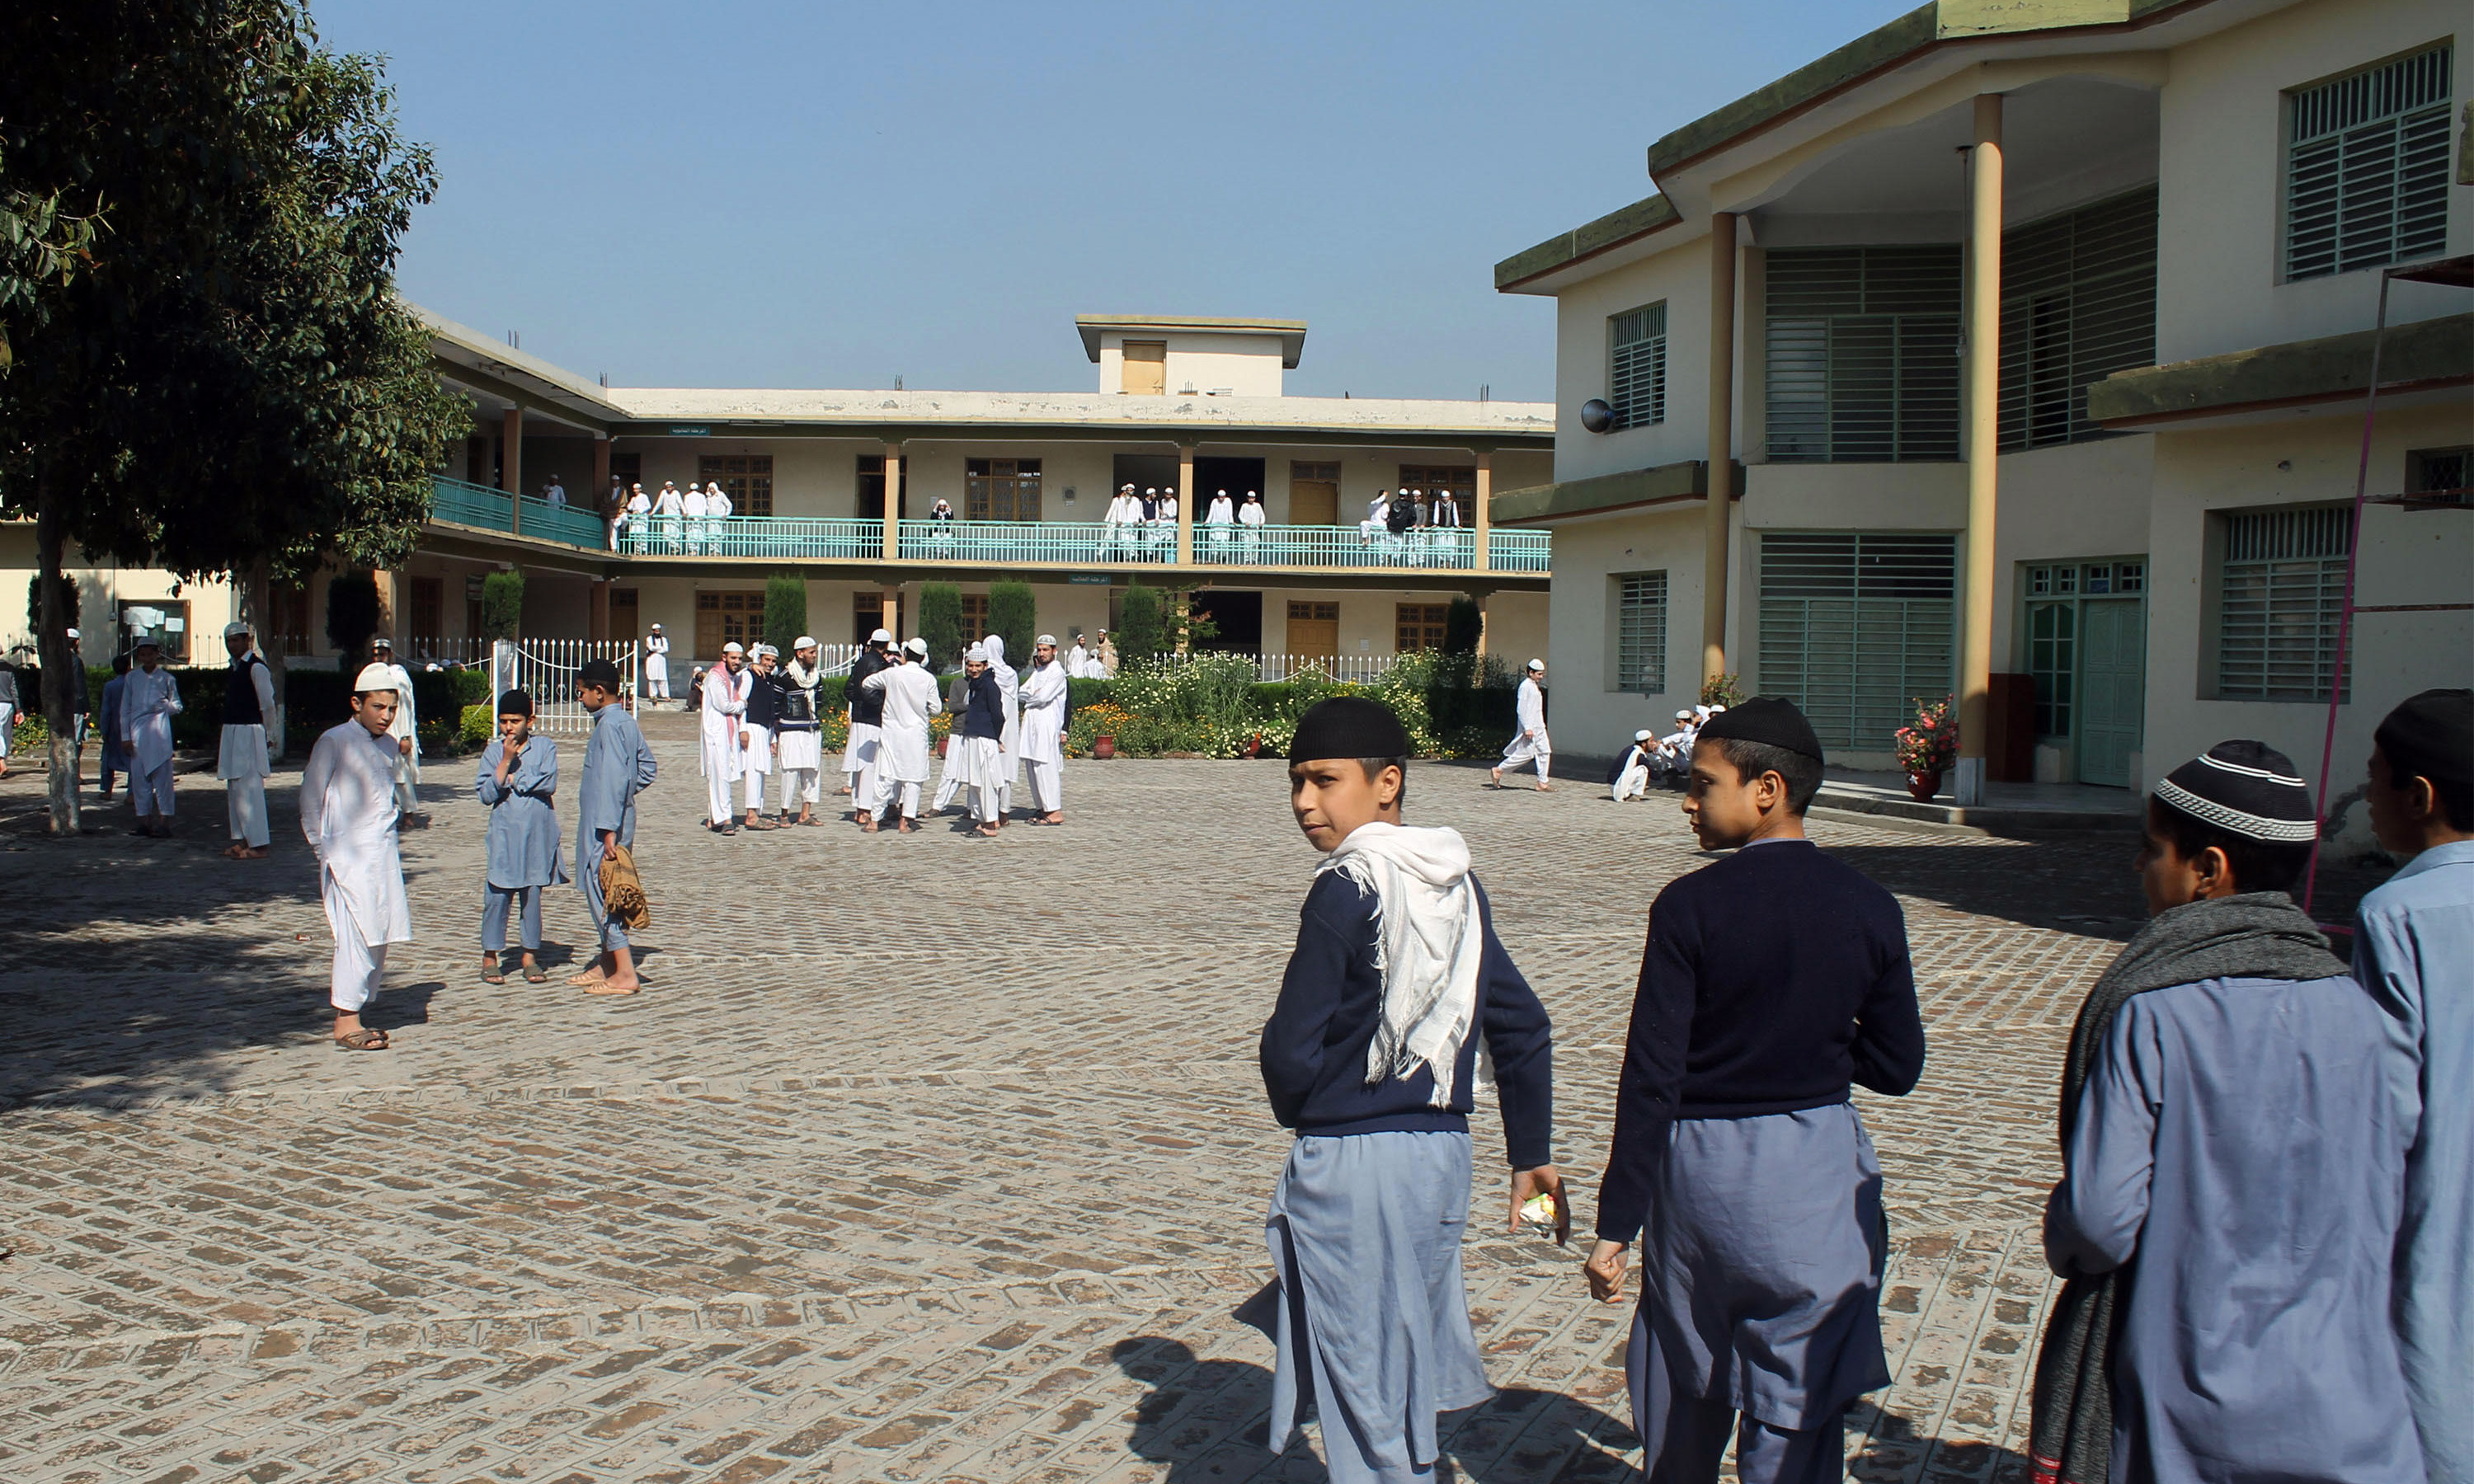 Students of Al-Jamiatul Asaria during their lunch break | Ghulam Dastageer